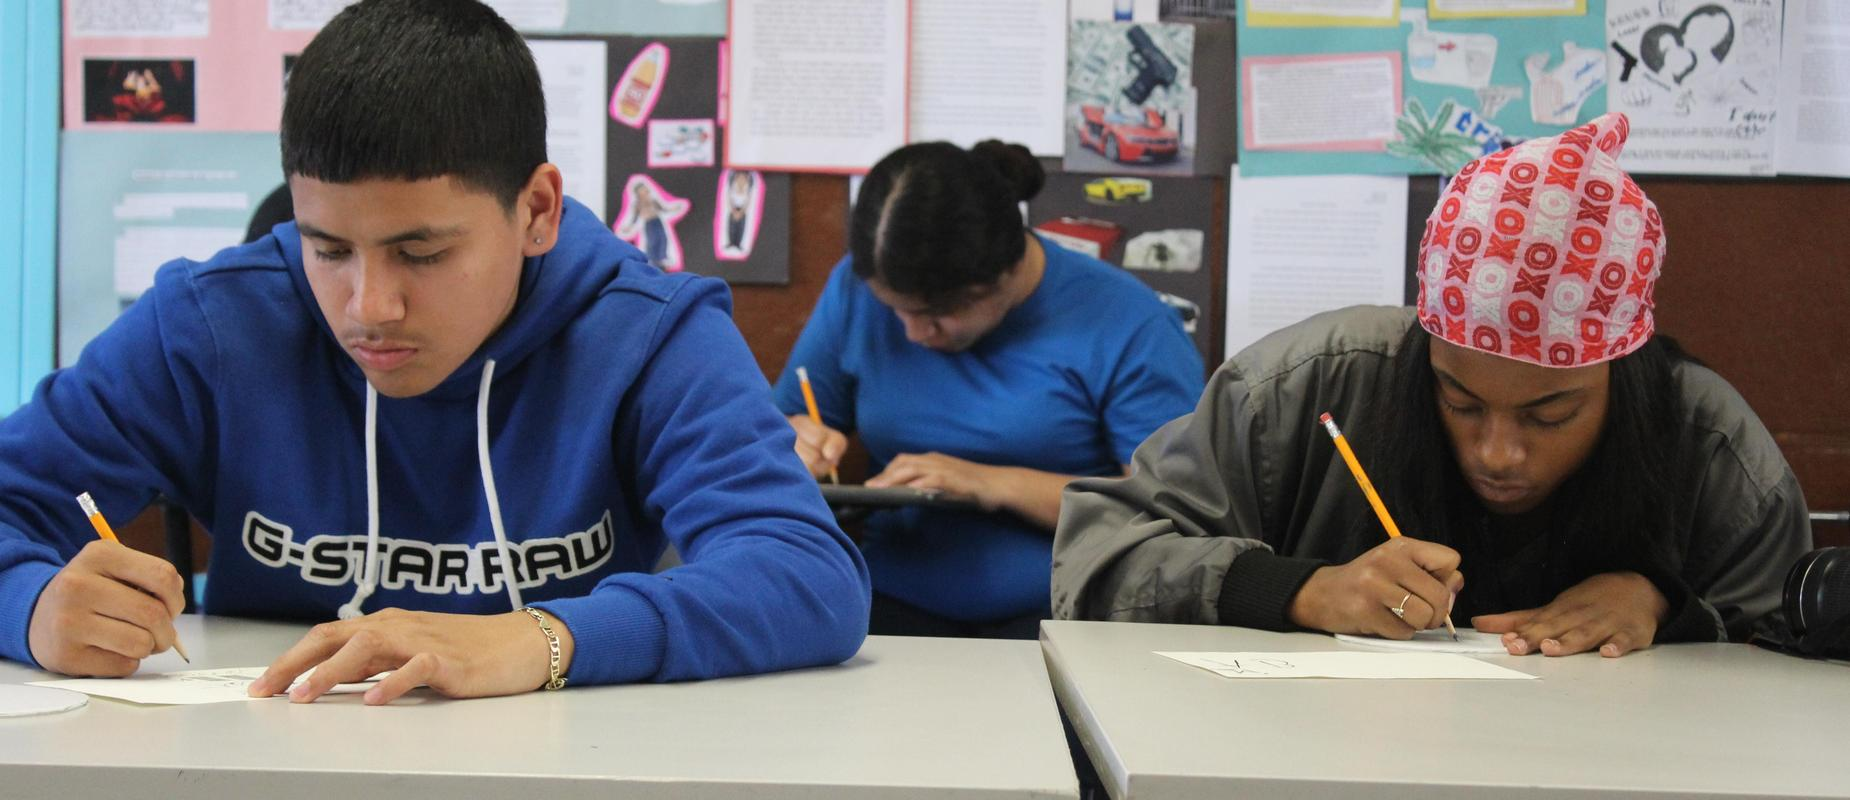 Students writing at their desks